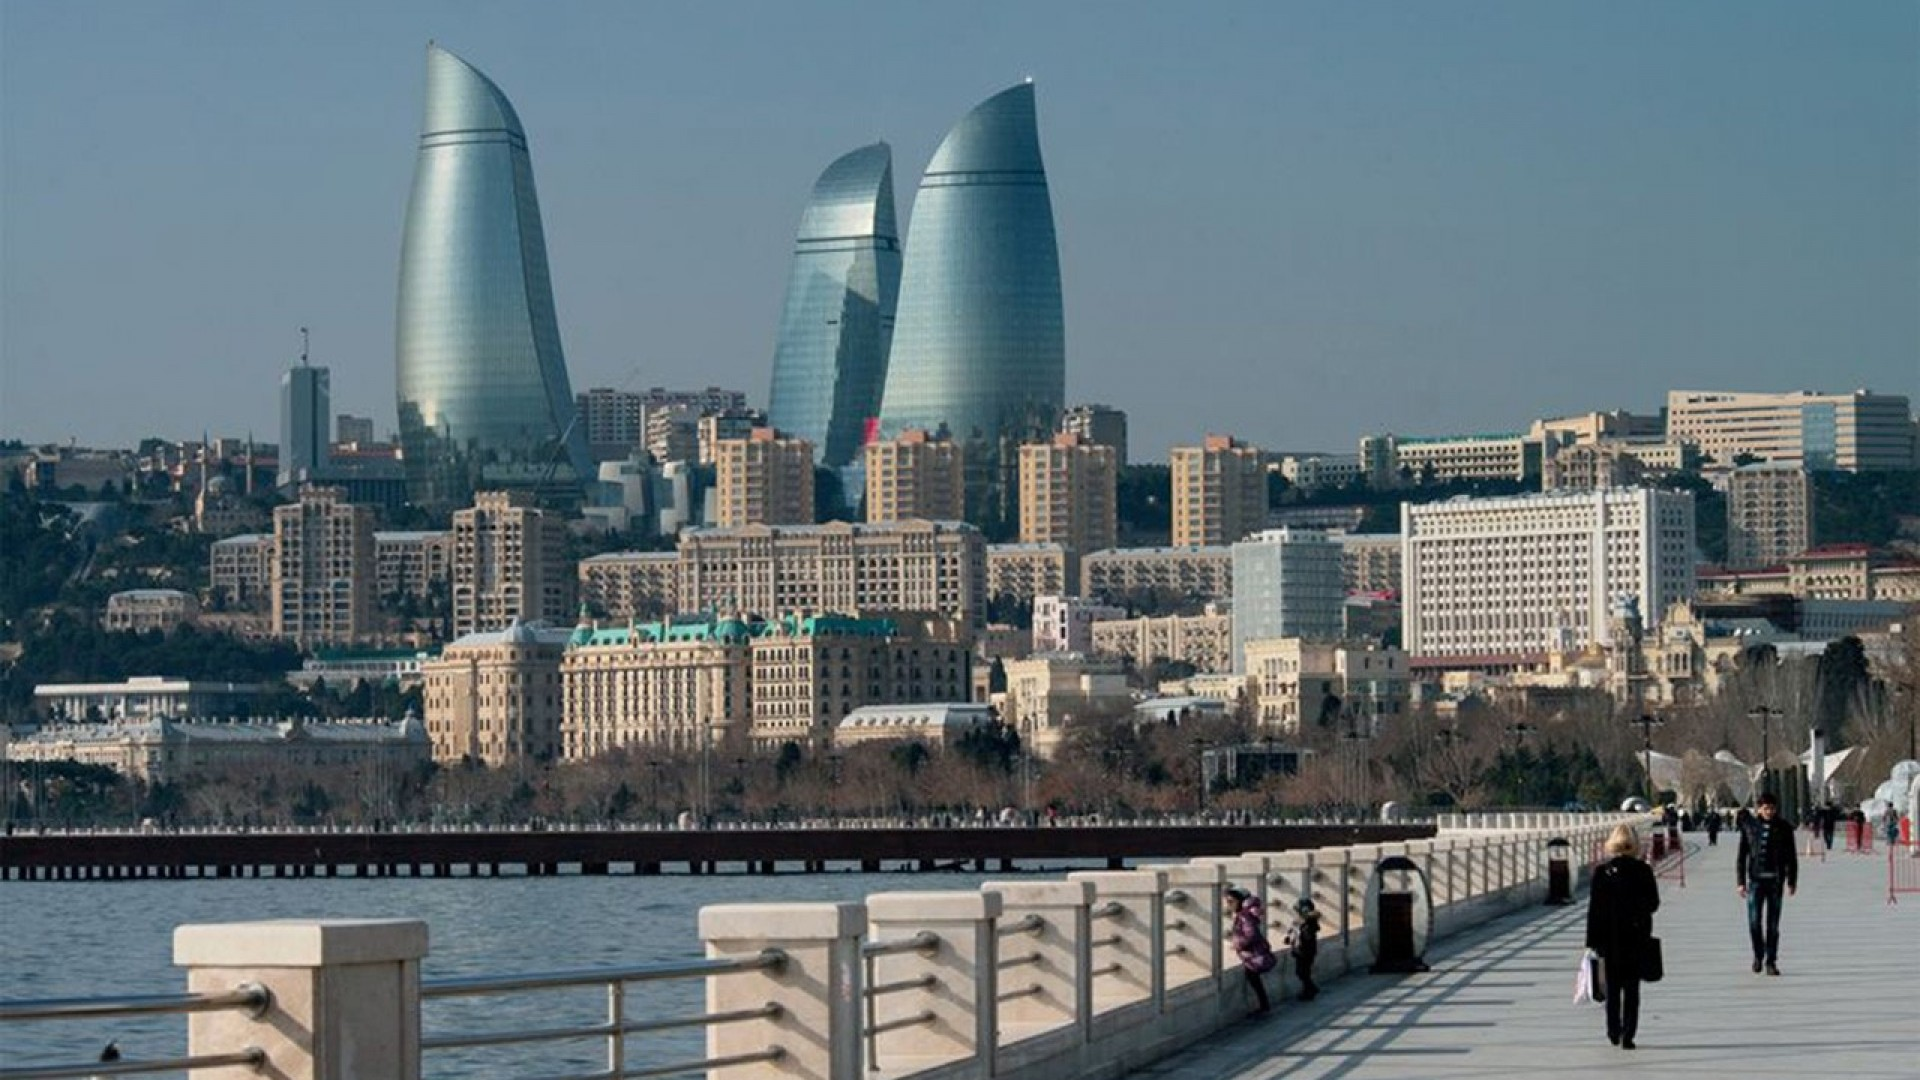 Futuristic architecture design buildings azerbaijan baku flame towers wallpaper